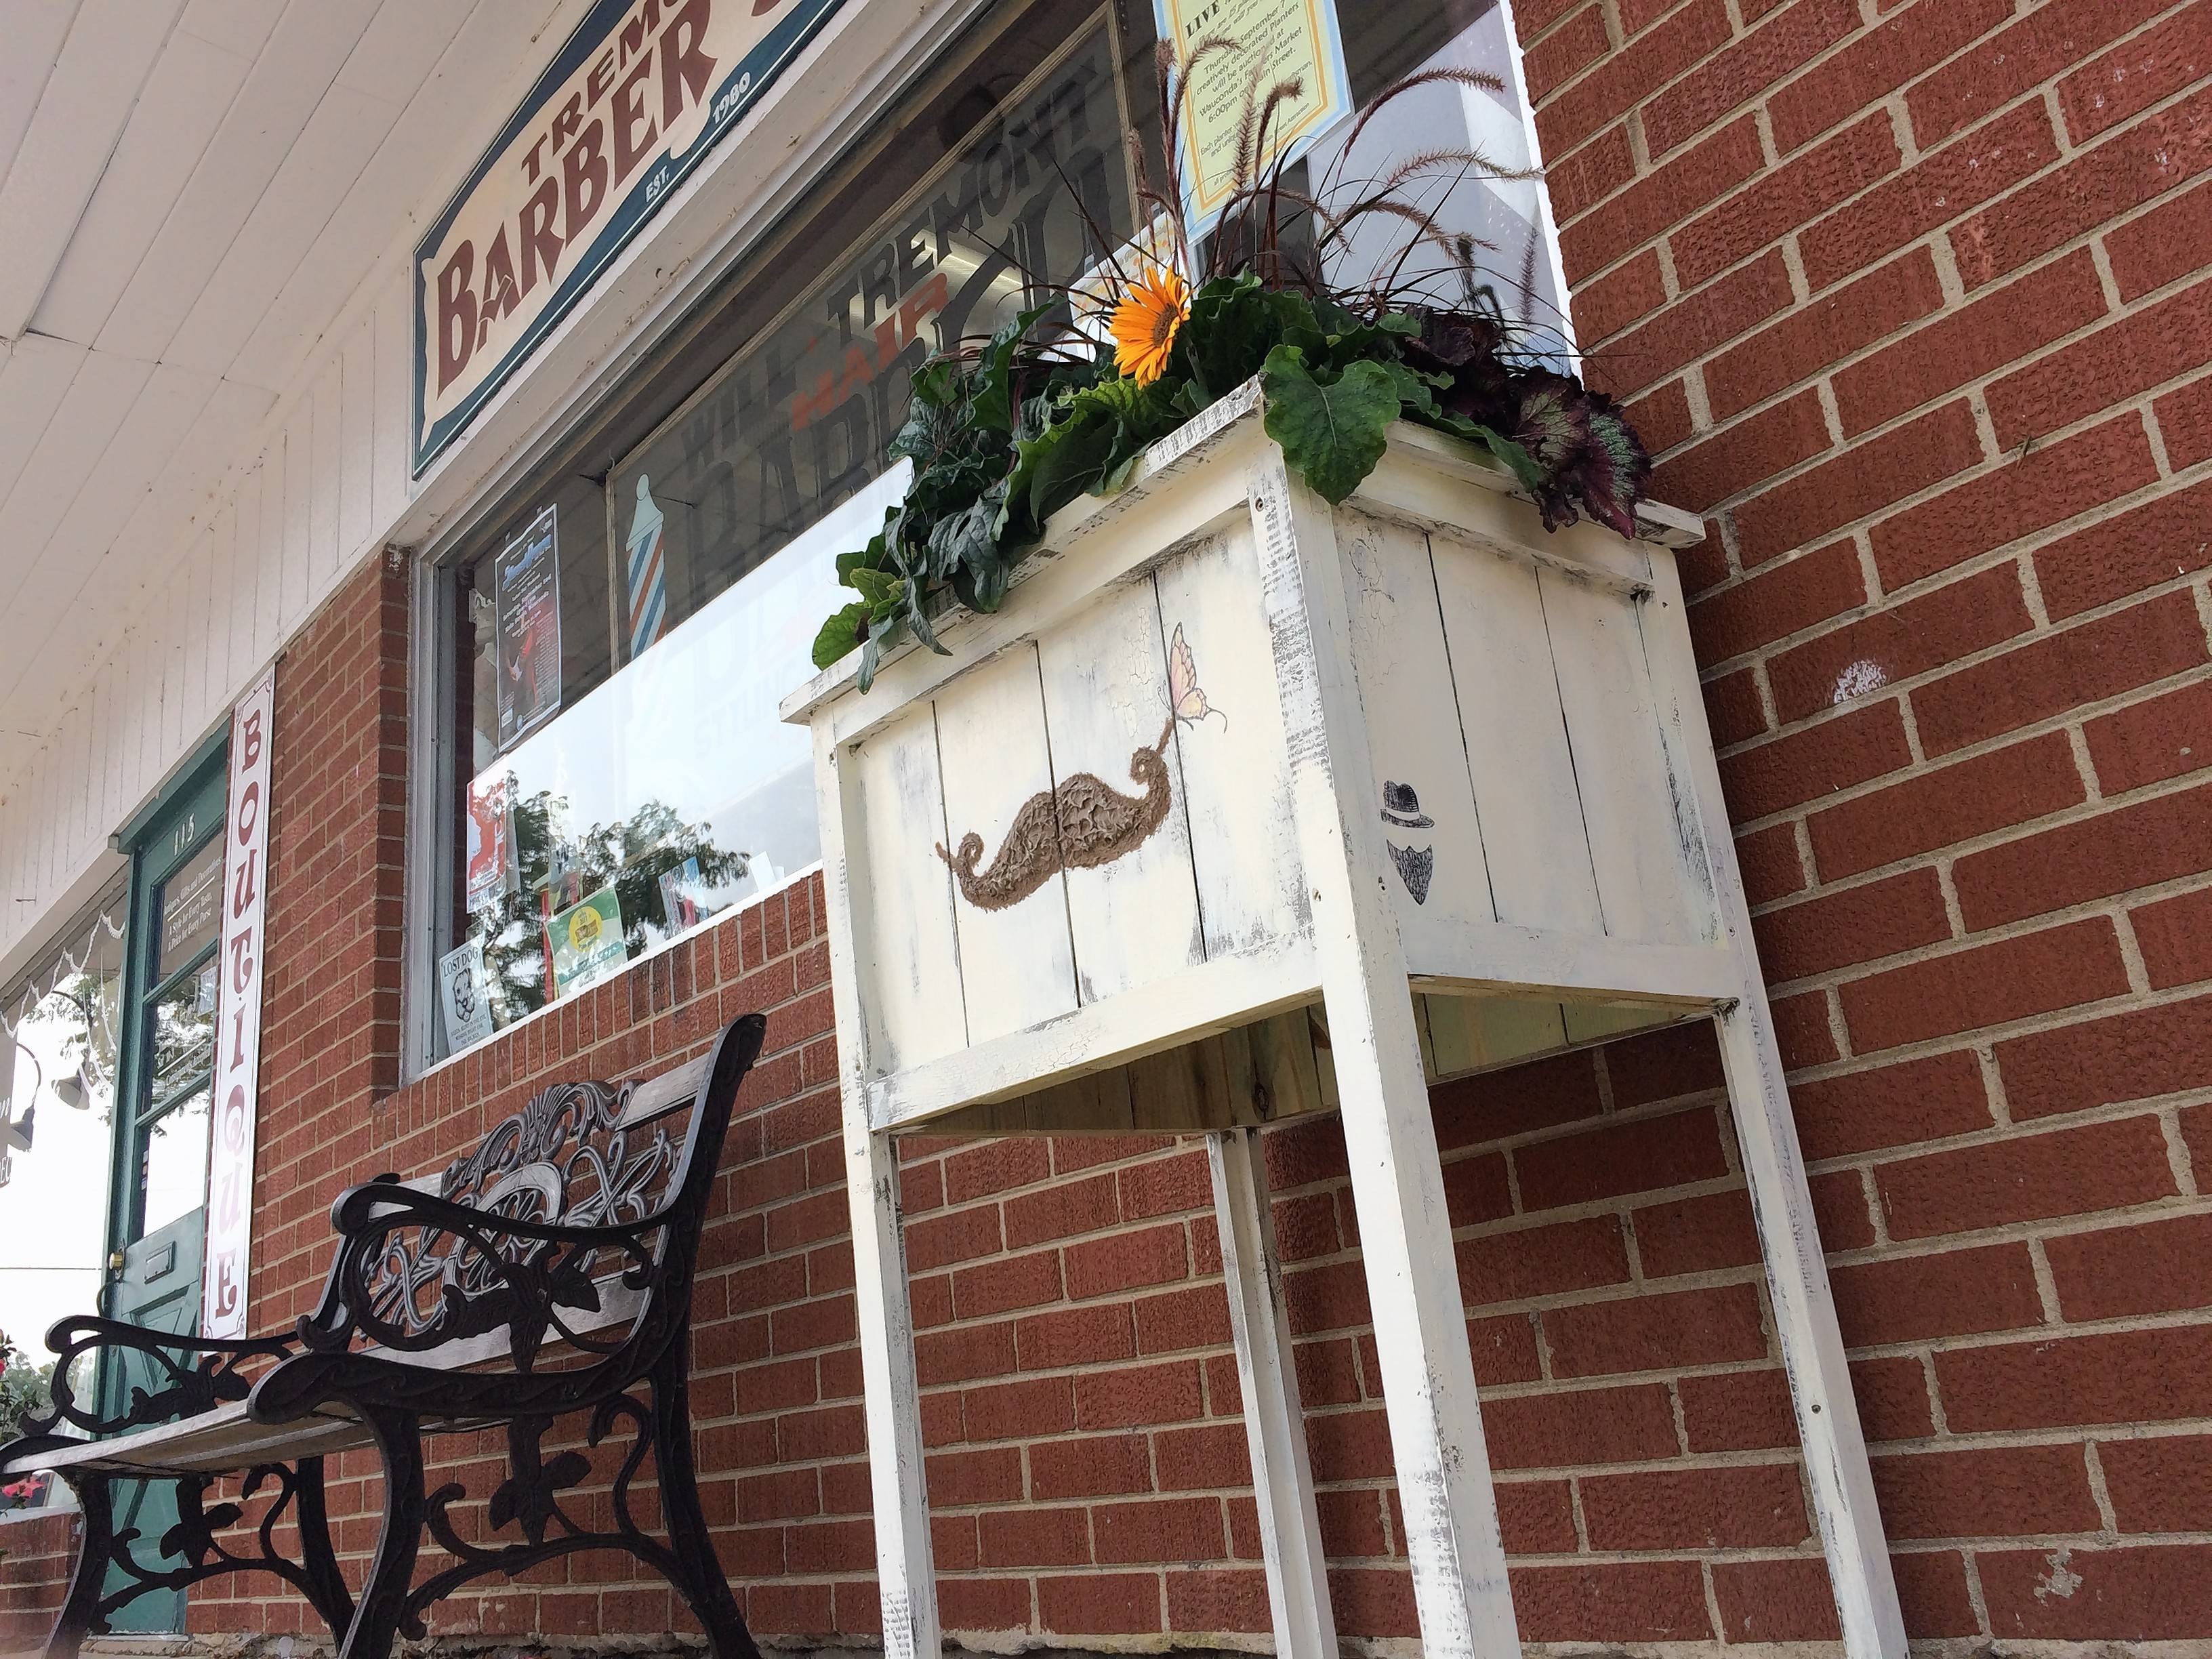 A mustache and a butterfly adorn the planter in front of Tremonte's Barber Shop in downtown Wauconda. Fifteen planters decorate Main Street as part of an annual public art exhibition.